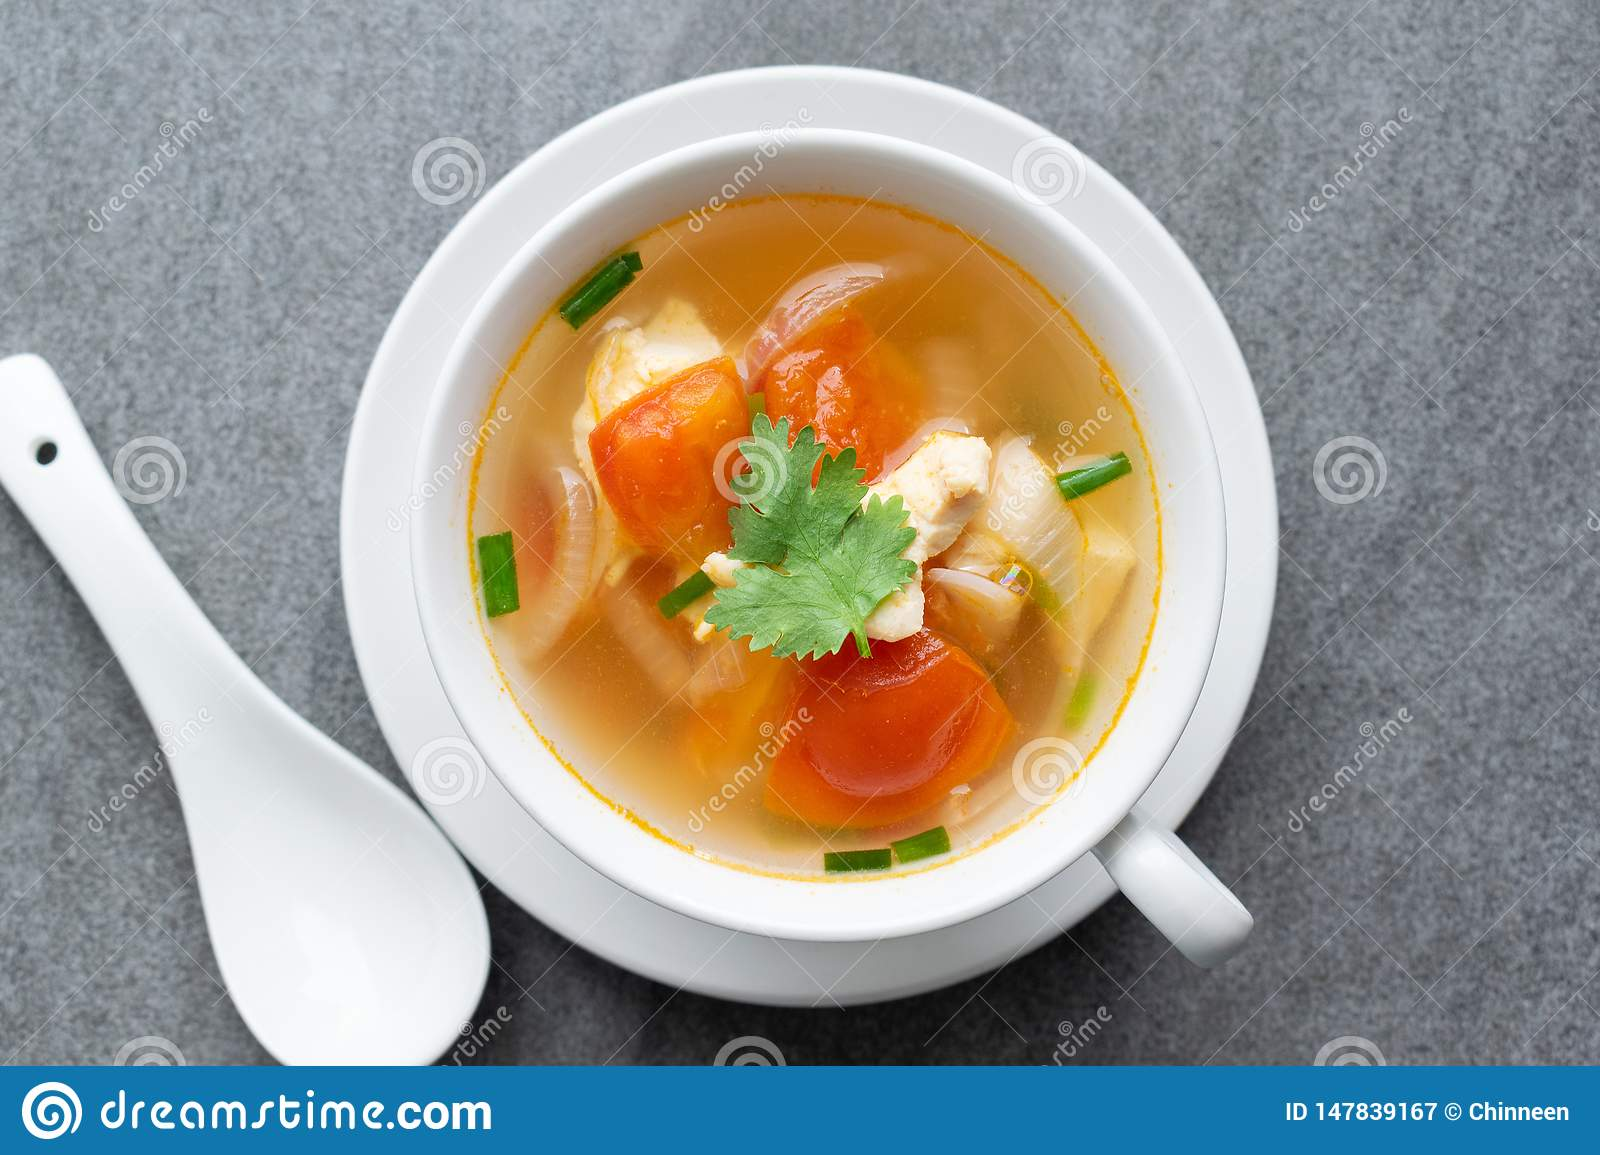 Hot soup chicken healthy at morning on concrete table